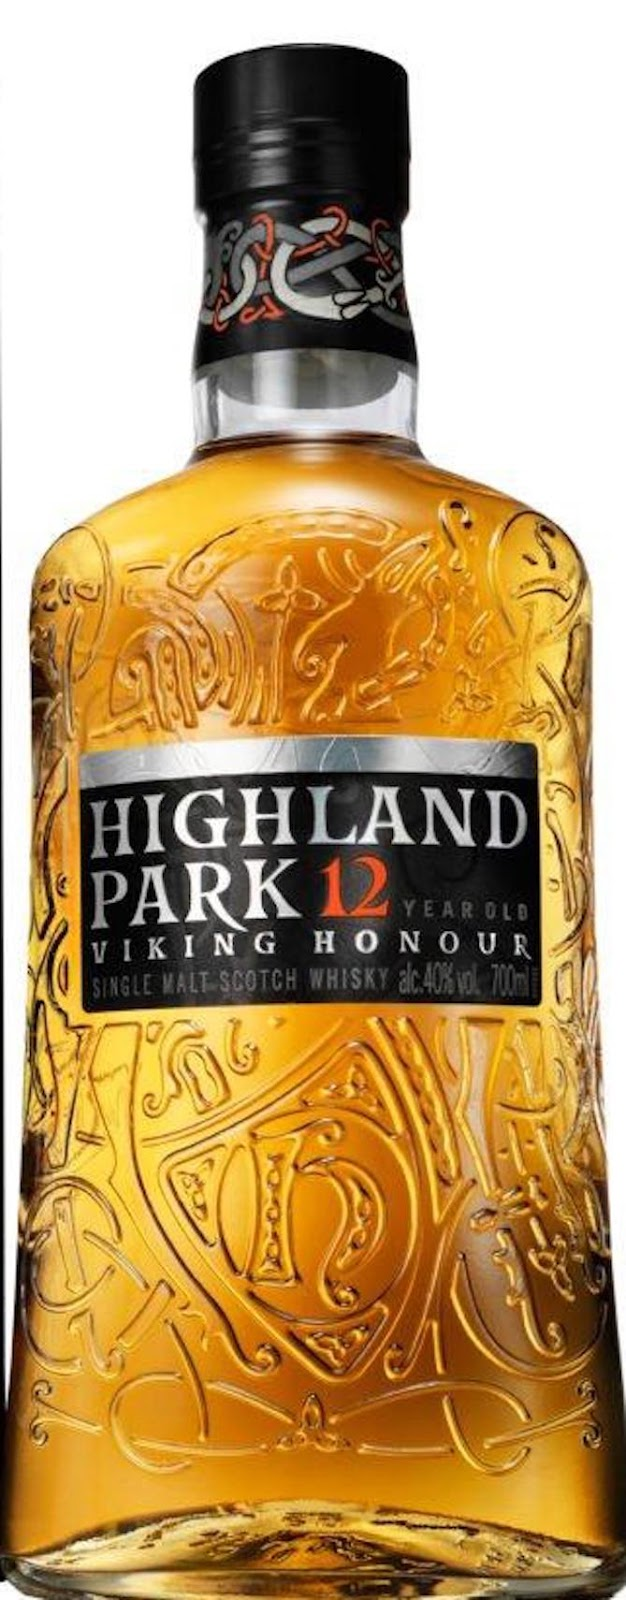 HIGHLAND PARK 12 YR SINGLE MALT SCOTCH